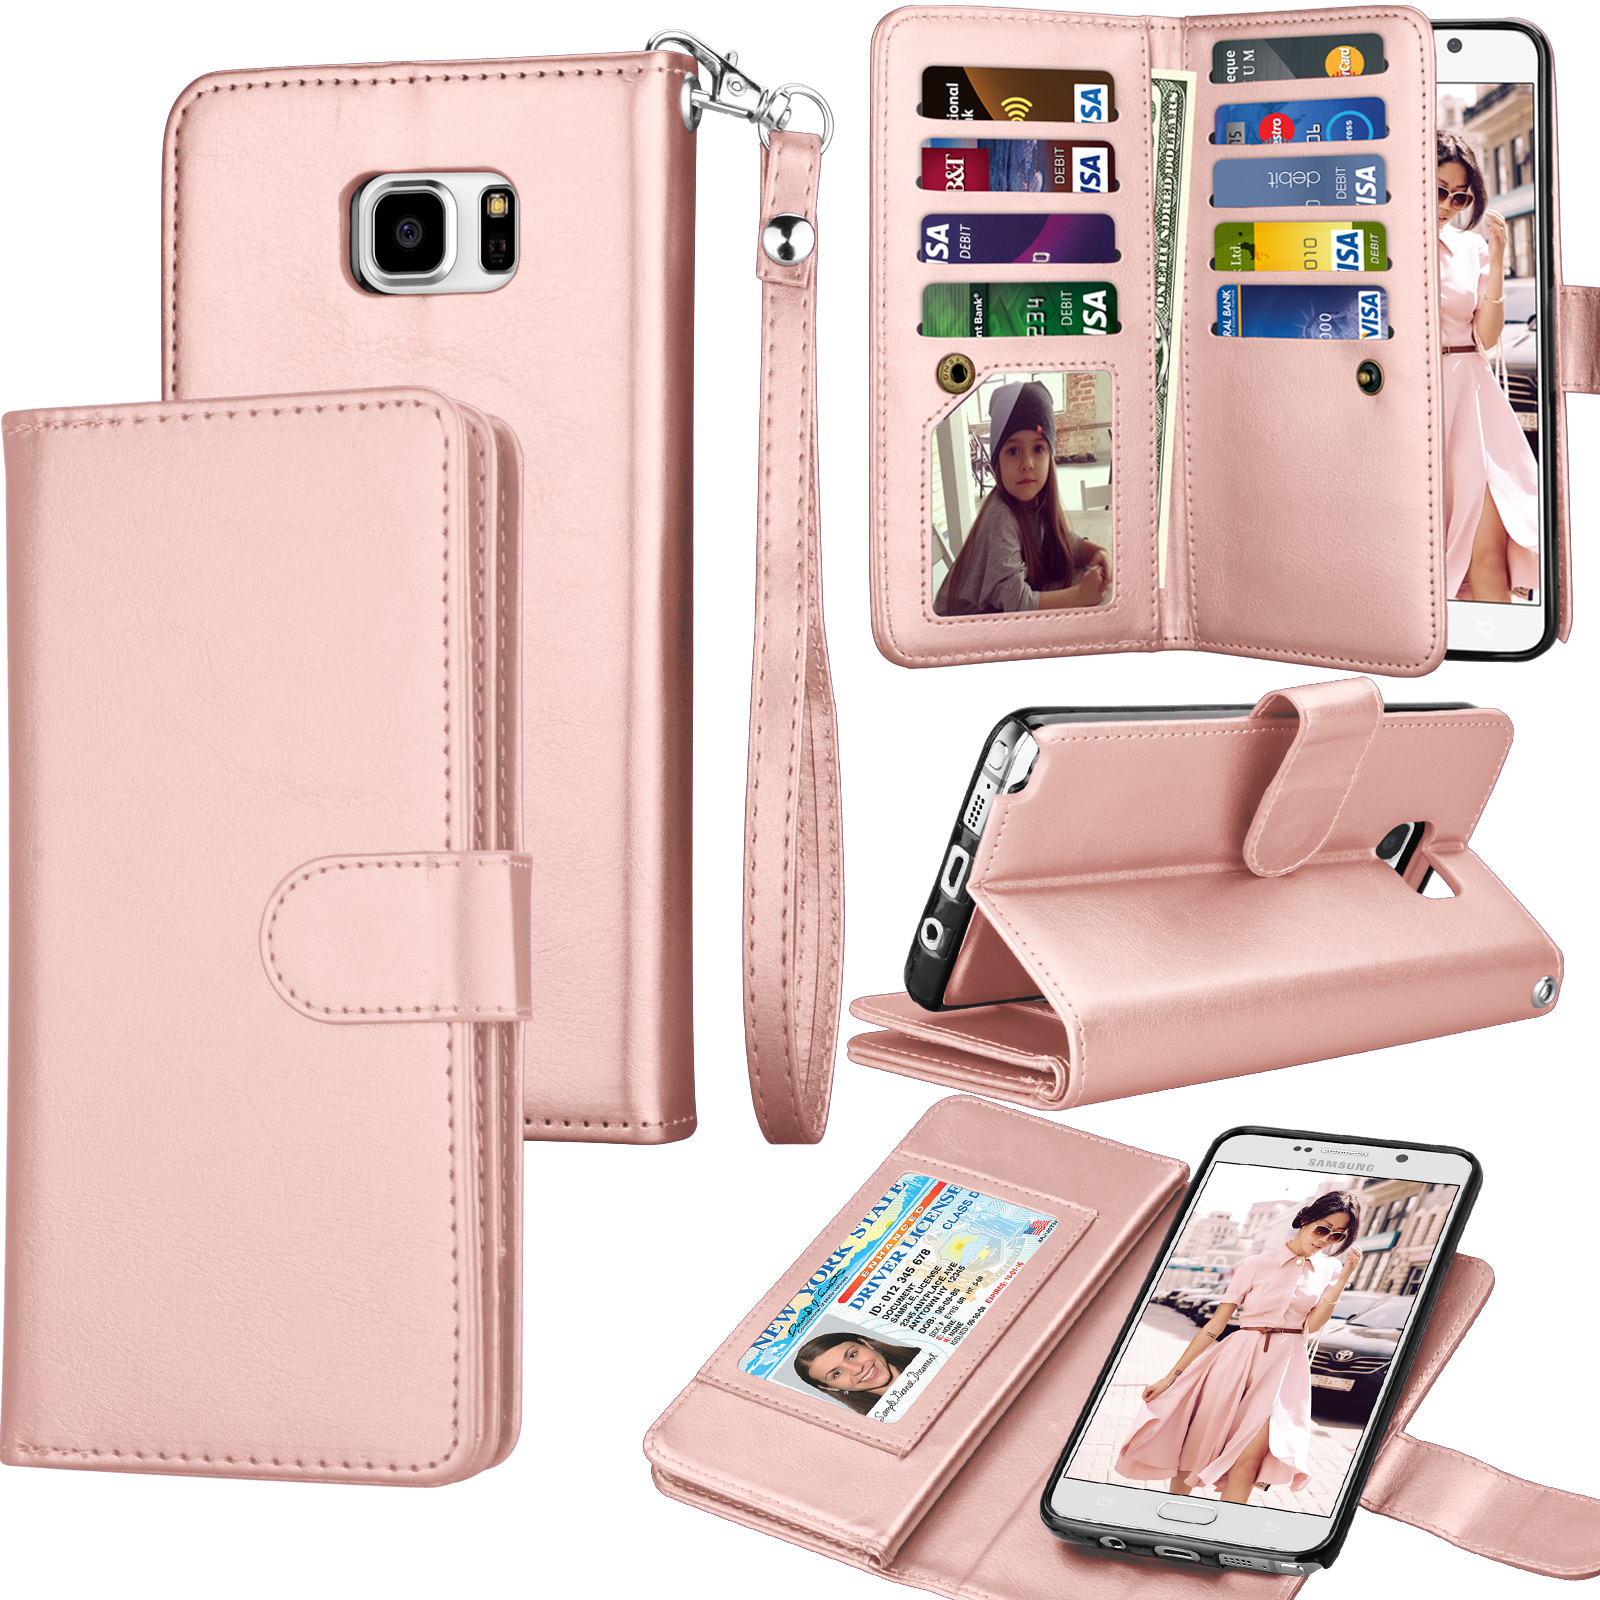 on sale da1a6 6c576 Galaxy Note 5 Case, Note 5 Wallet Case, Samsung Galaxy Note 5 PU Leather  Case, Tekcoo Luxury Cash Credit Card Slots Holder Carrying Flip Cover ...